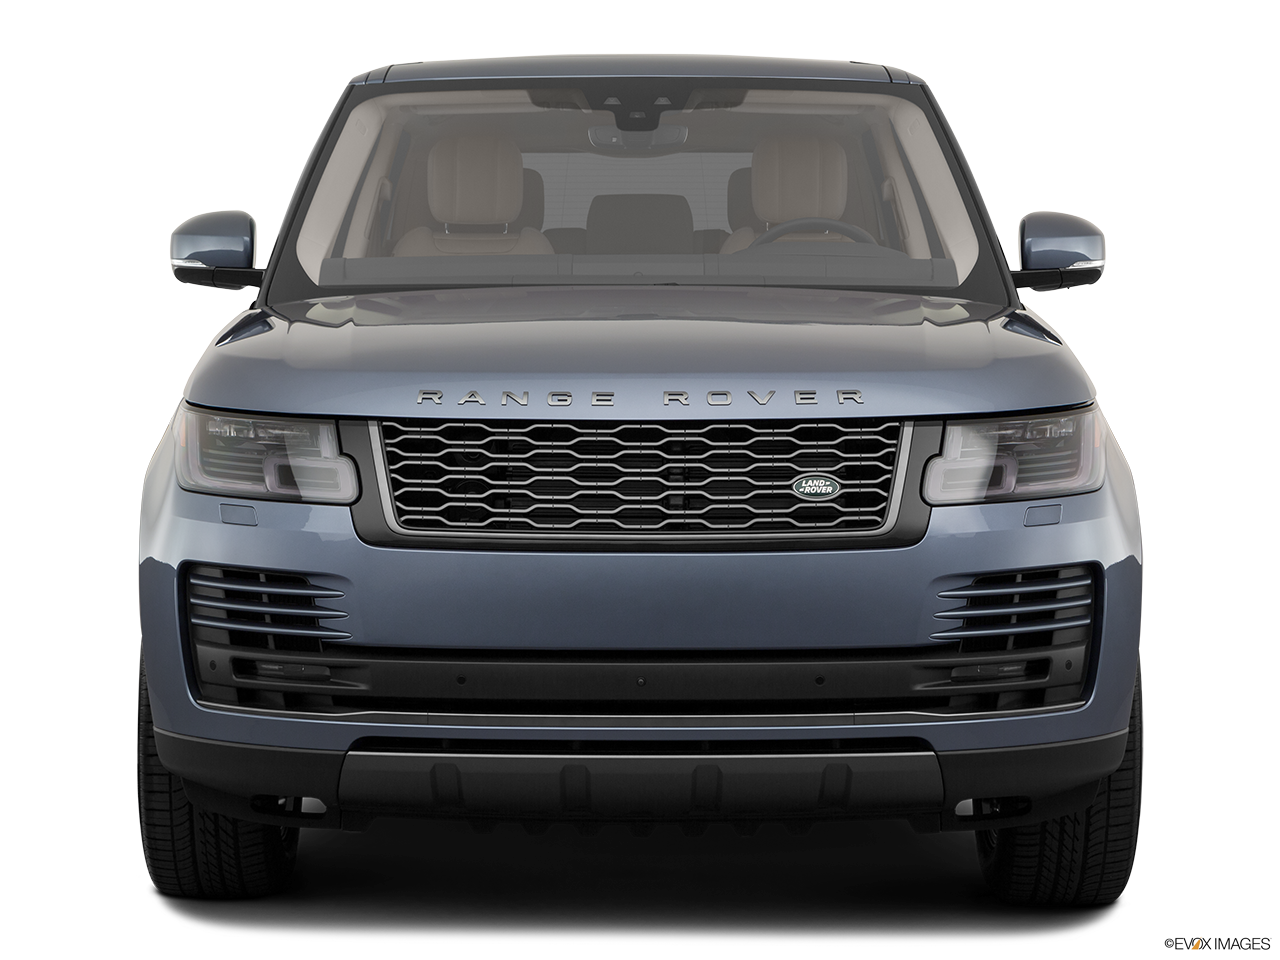 Front view of the Land Rover Range Rover PHEV